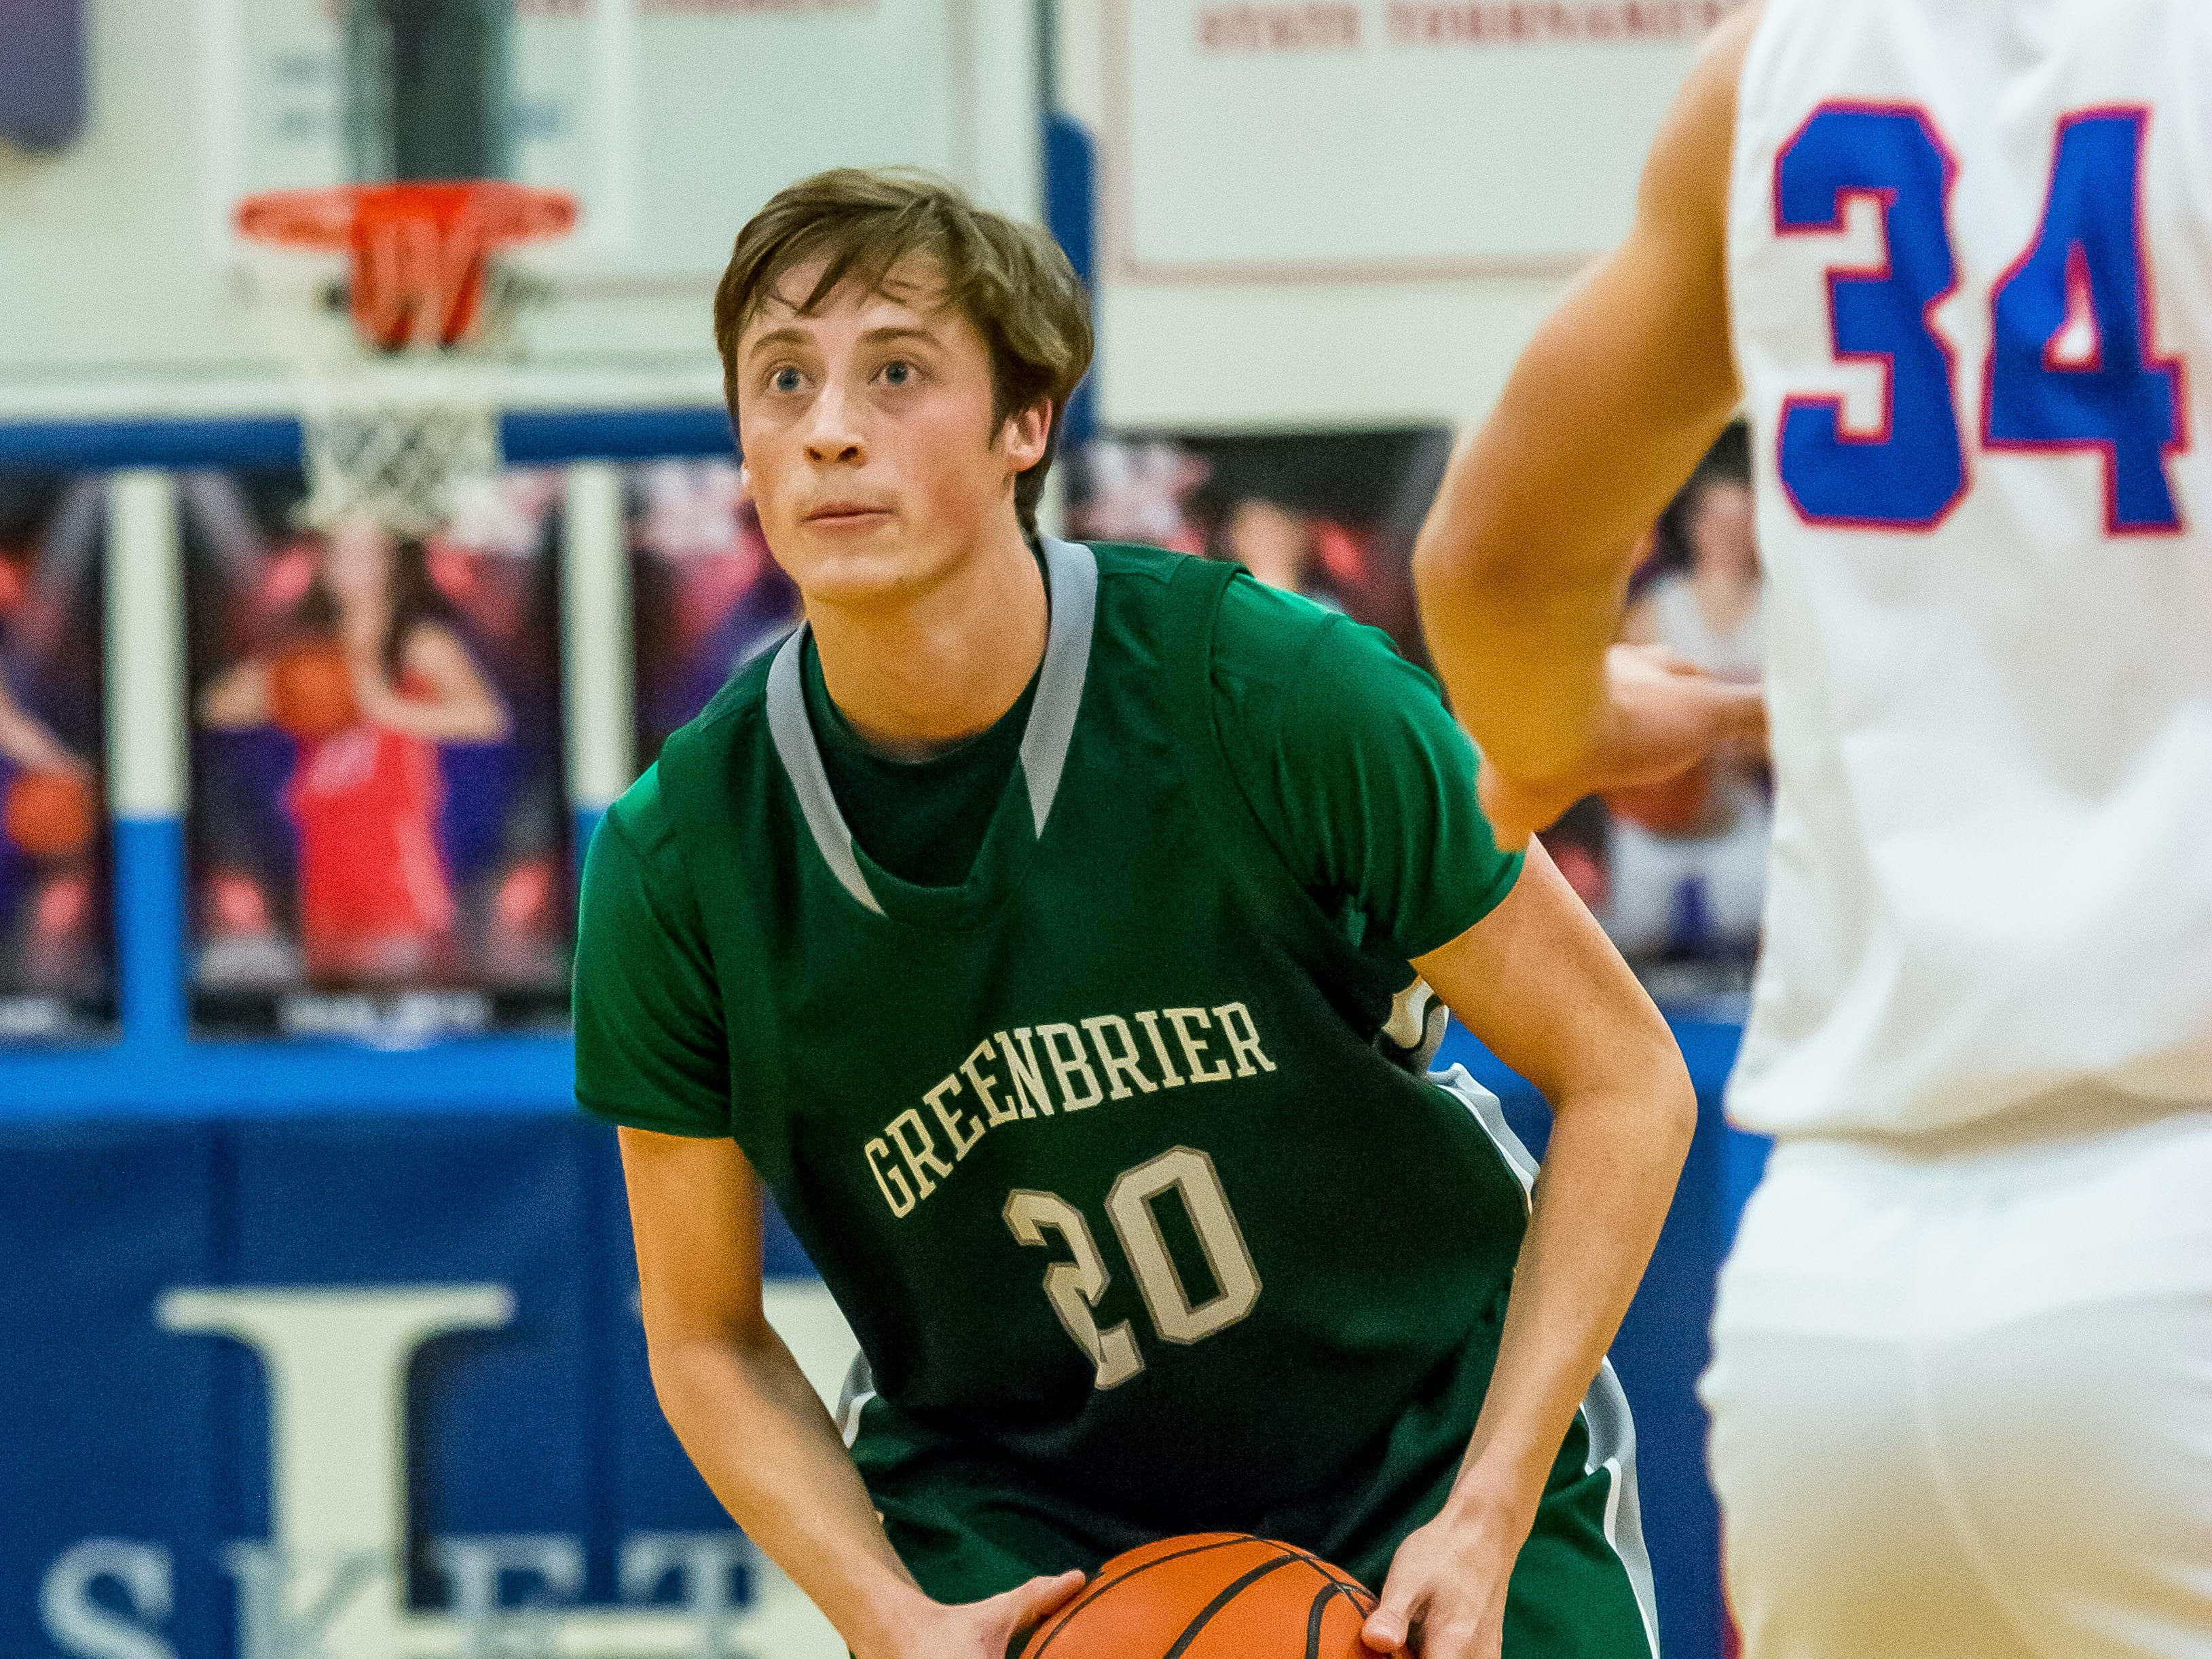 Greenbrier's Dallas Polen looks for a teammate to pass to against Harpeth.